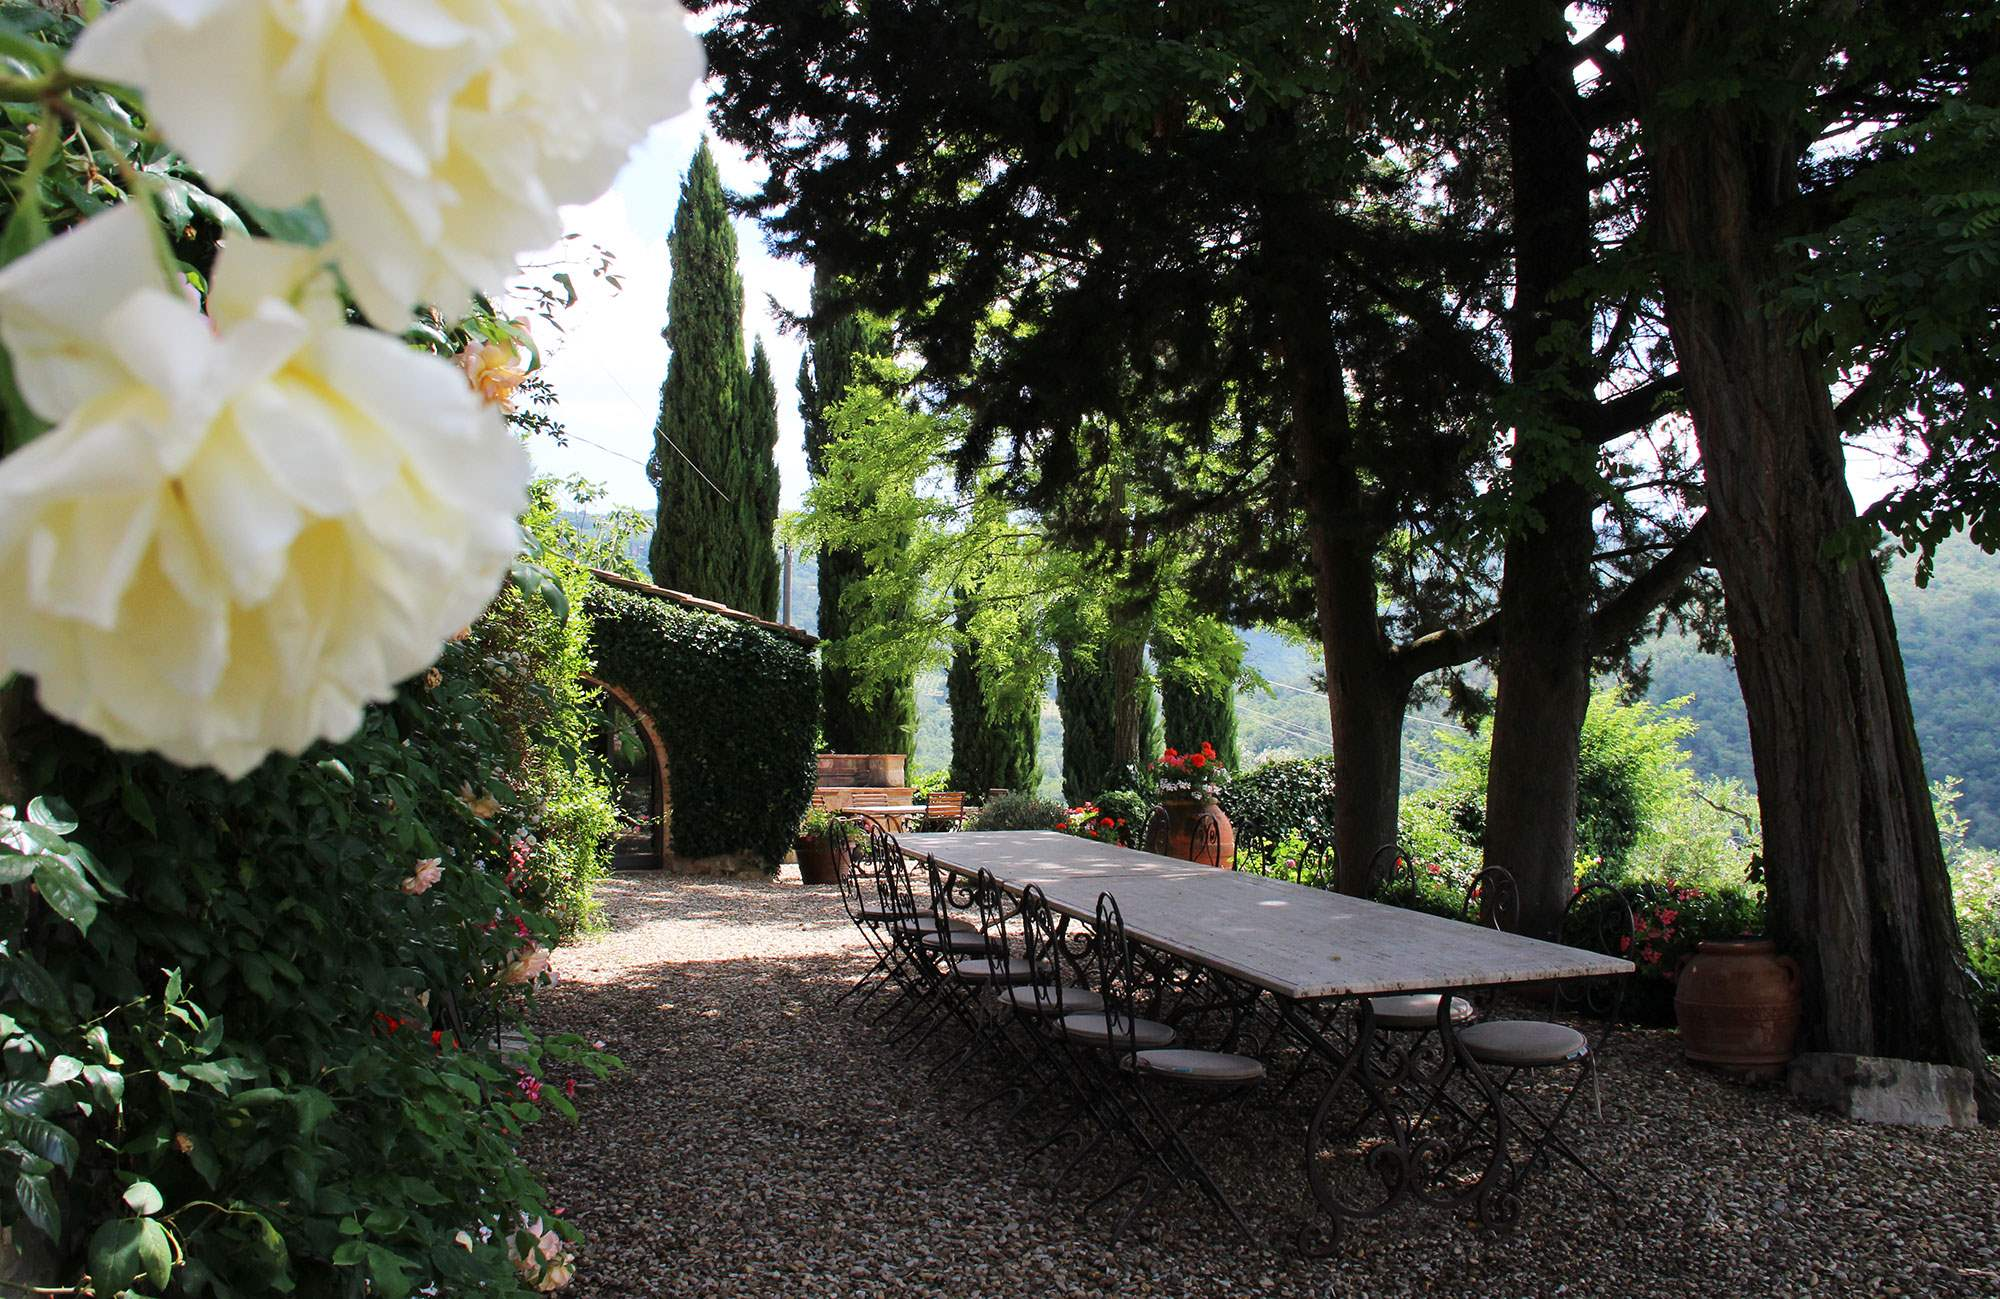 Villa Giacinto, 6 Bedroom rate, 6 bedroom villa in Chianti & Countryside, Tuscany Photo #28